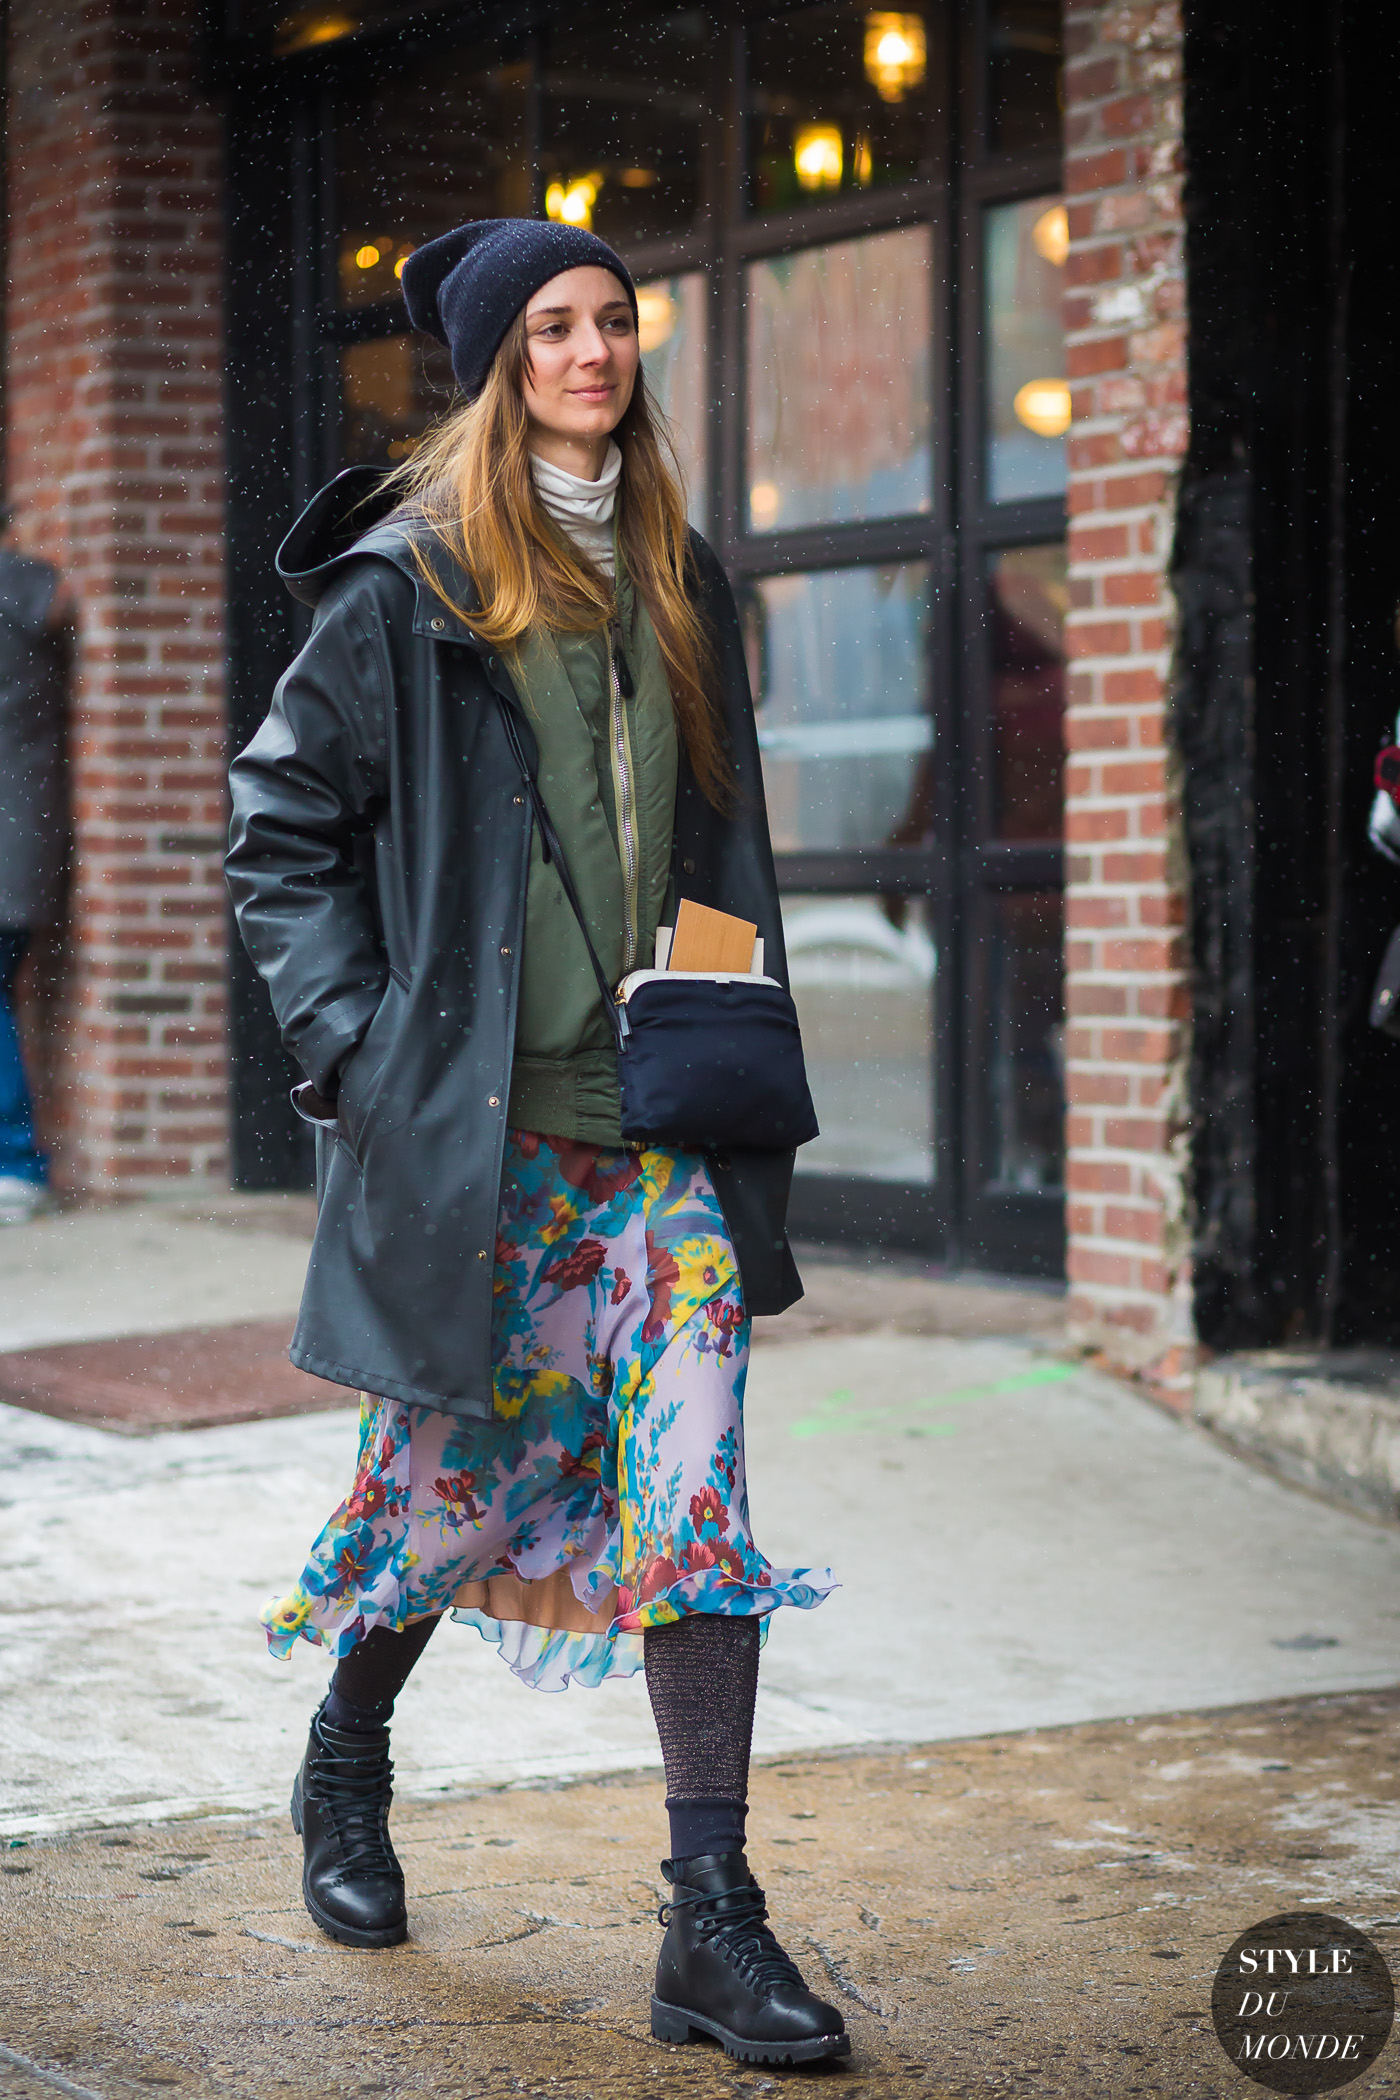 brie-welch-by-styledumonde-street-style-fashion-photography